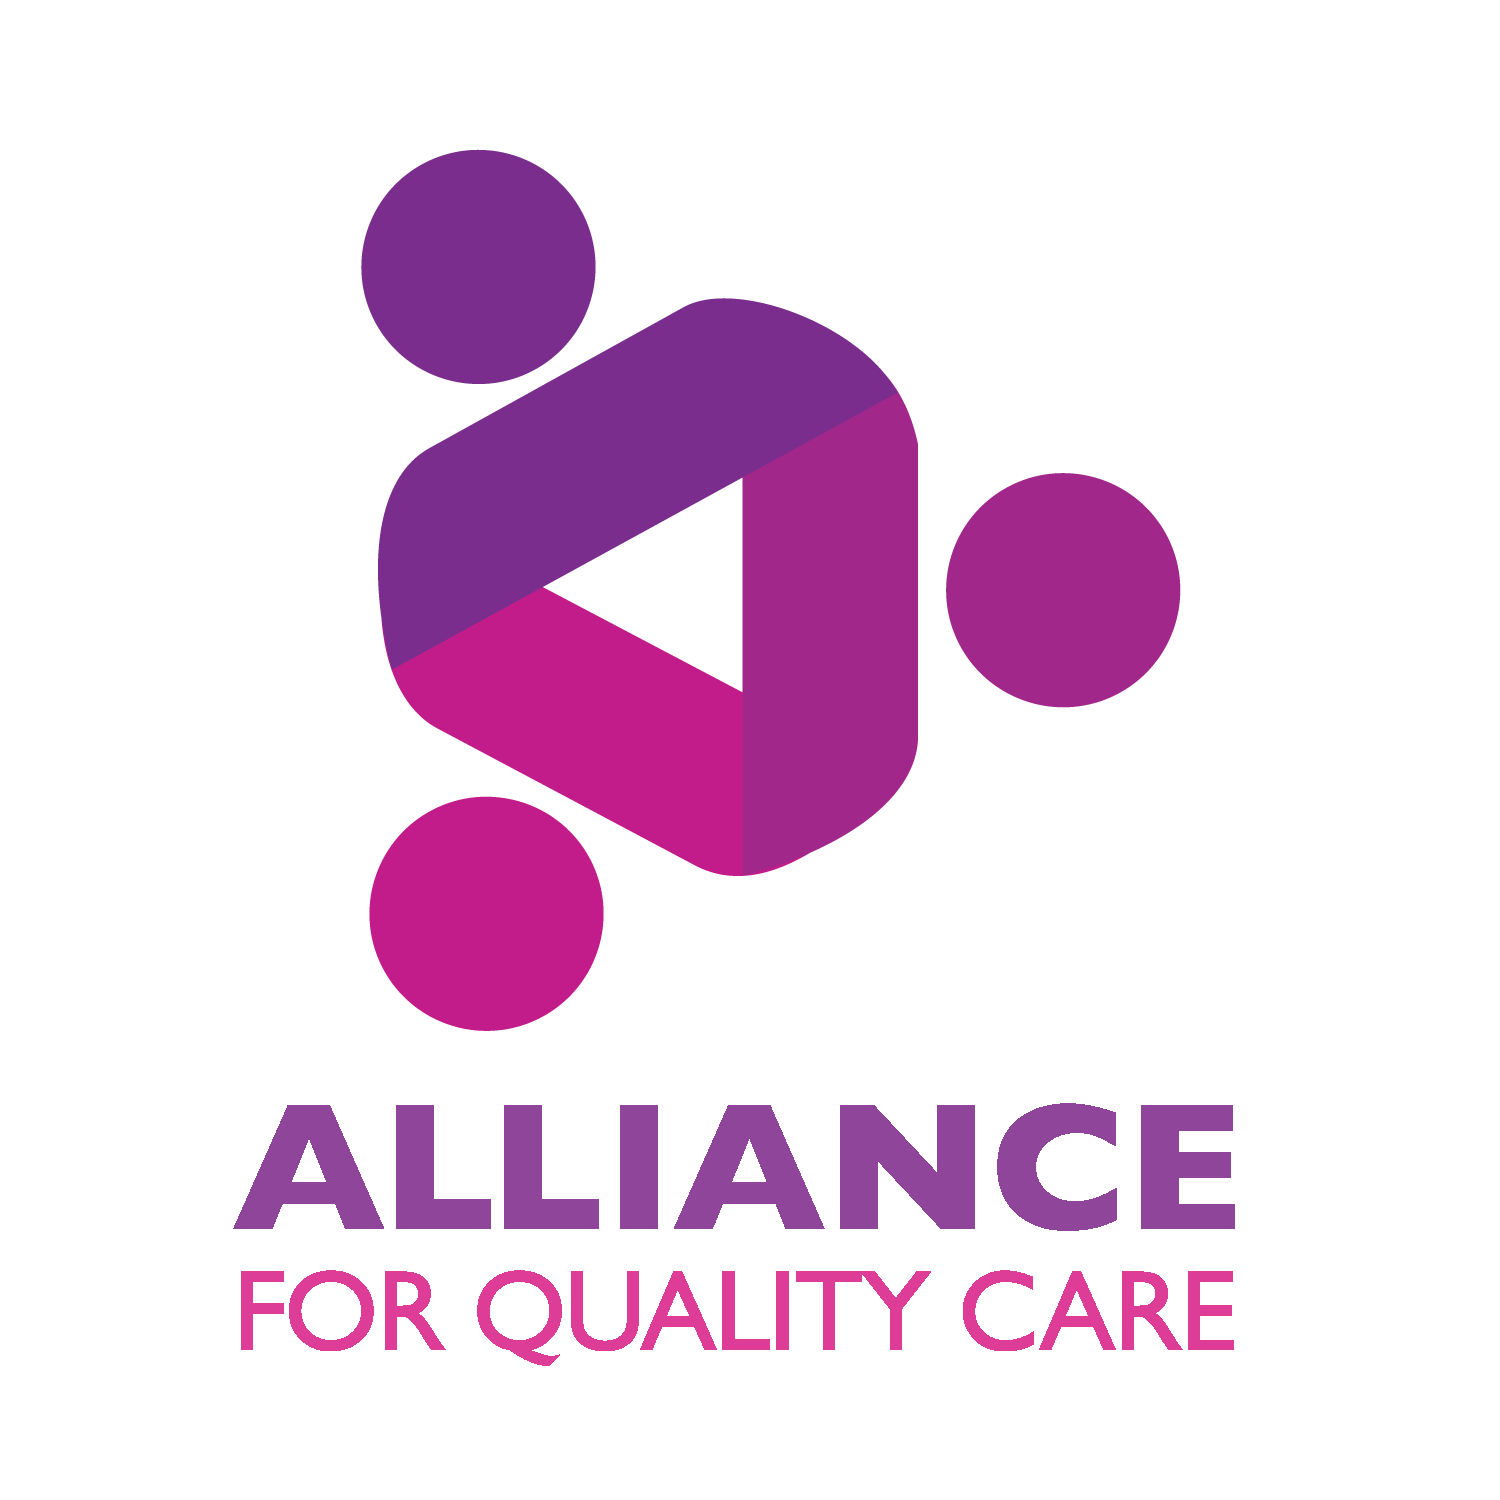 NJ Alliance for Quality Care